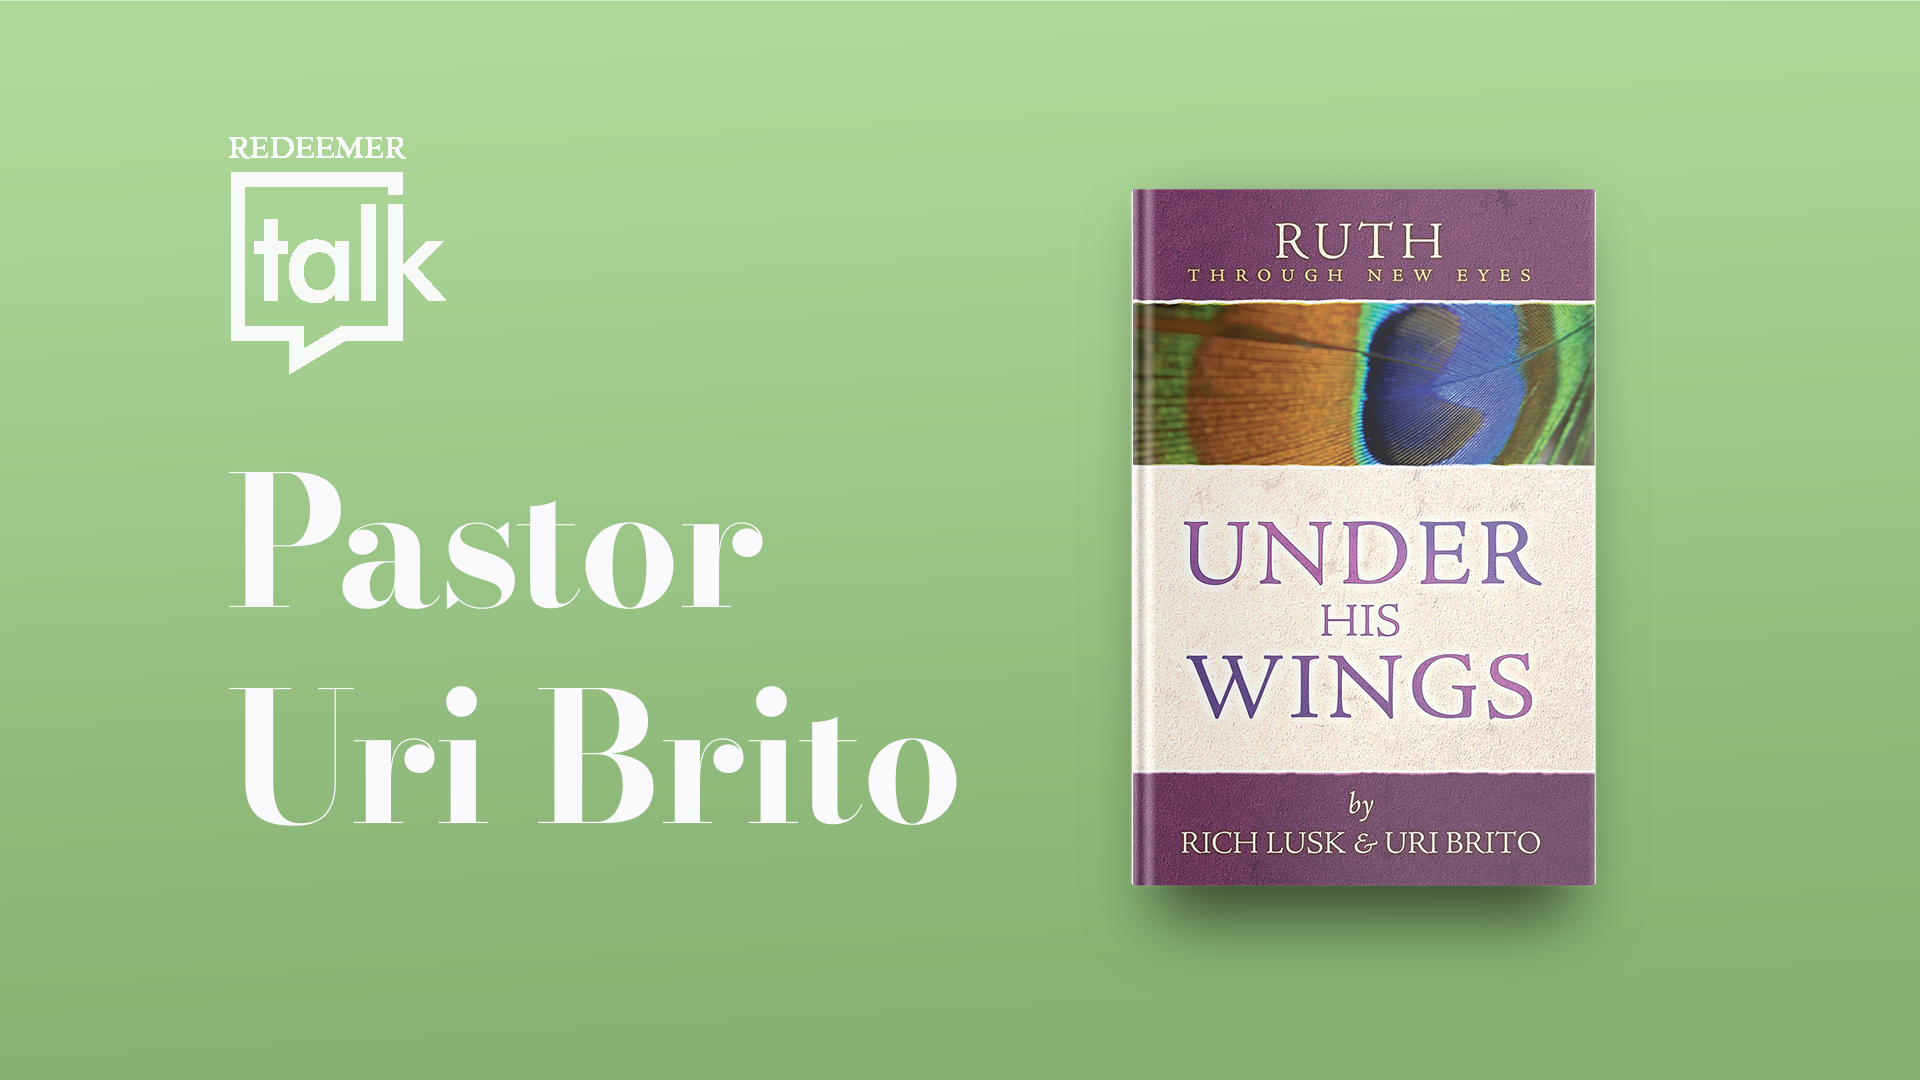 Brito discusses Book of Ruth commentary on church podcast